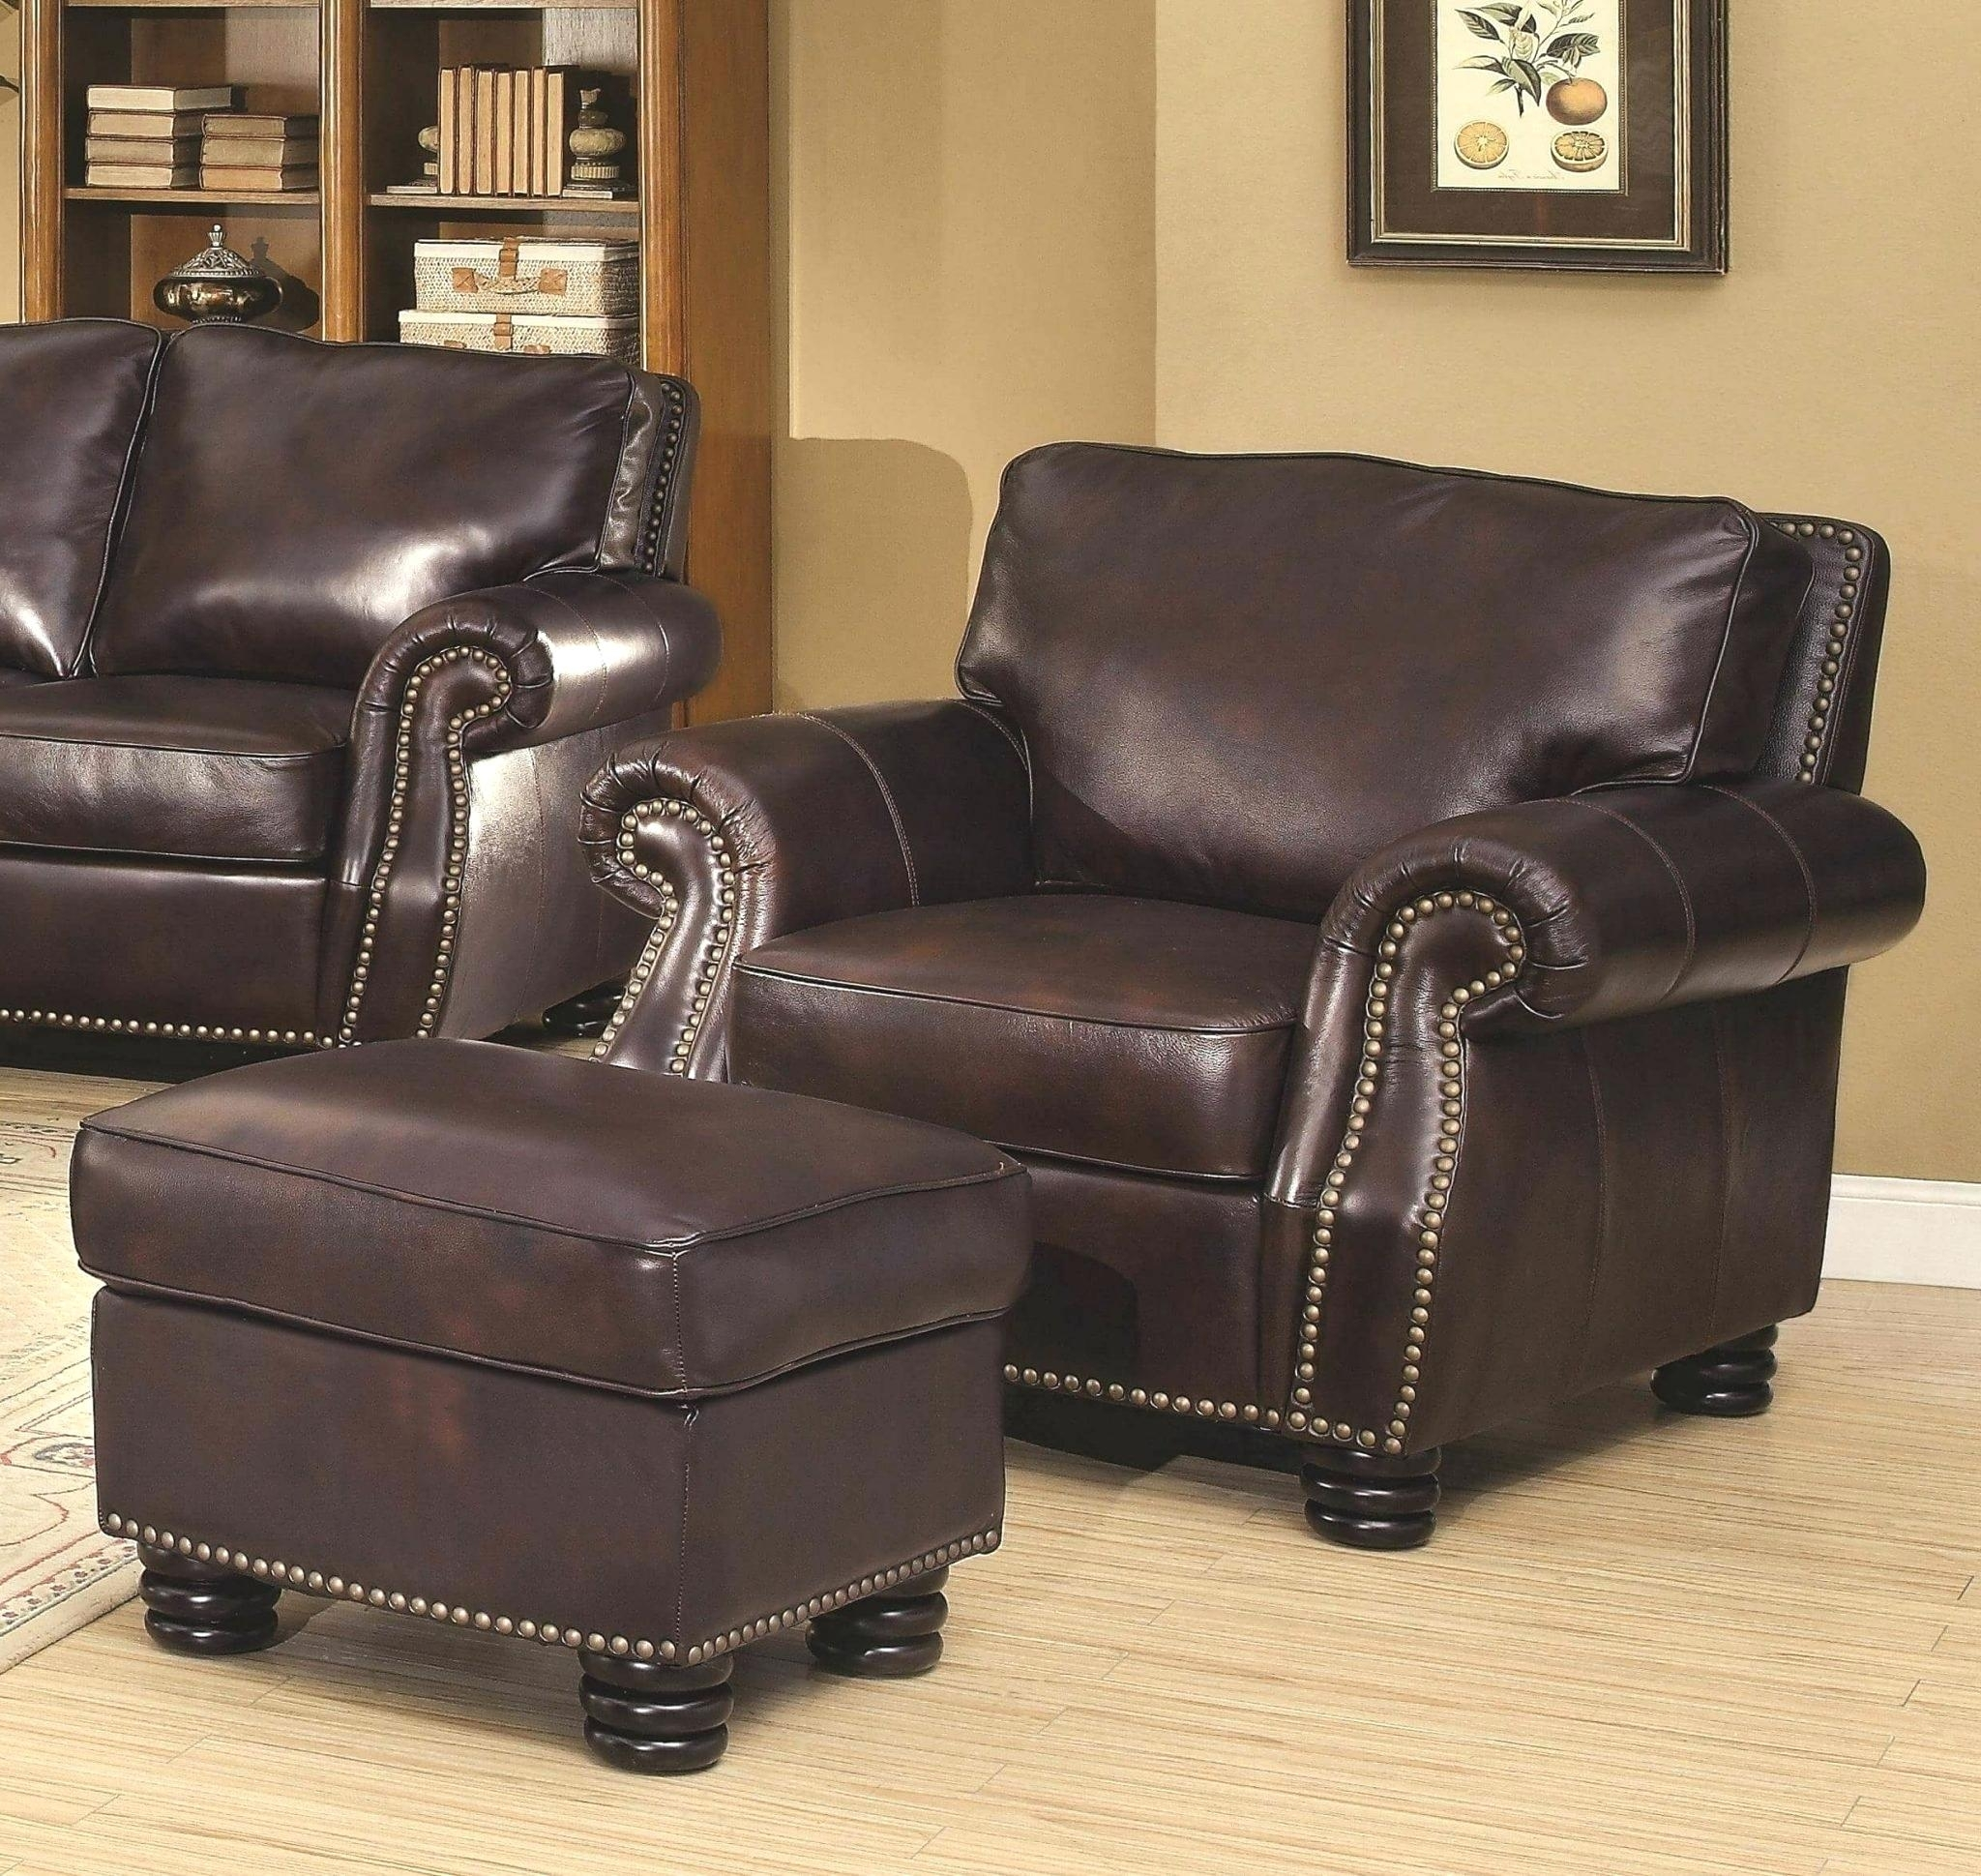 Chairs : Wingback Recliners Chairs Living Room Furniture Chair inside Chairs With Ottoman (Image 7 of 15)